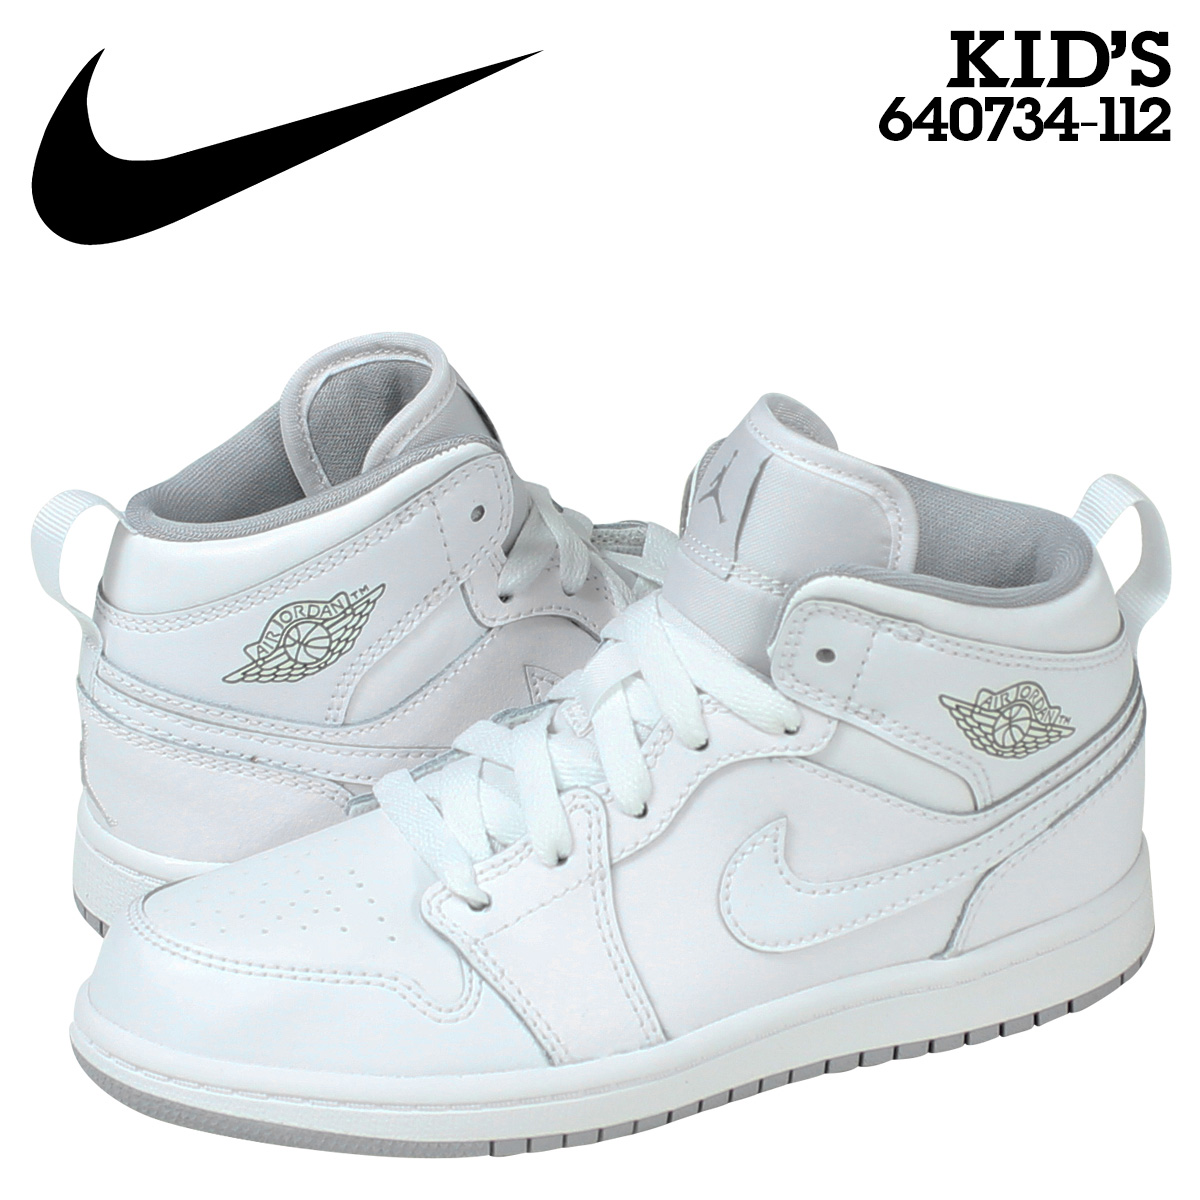 sneakers for cheap 3d5e5 747de Nike NIKE Air Jordan sneakers kids AIR JORDAN 1 MID PS Air Jordan 1 mid  640734 - 112 shoes white